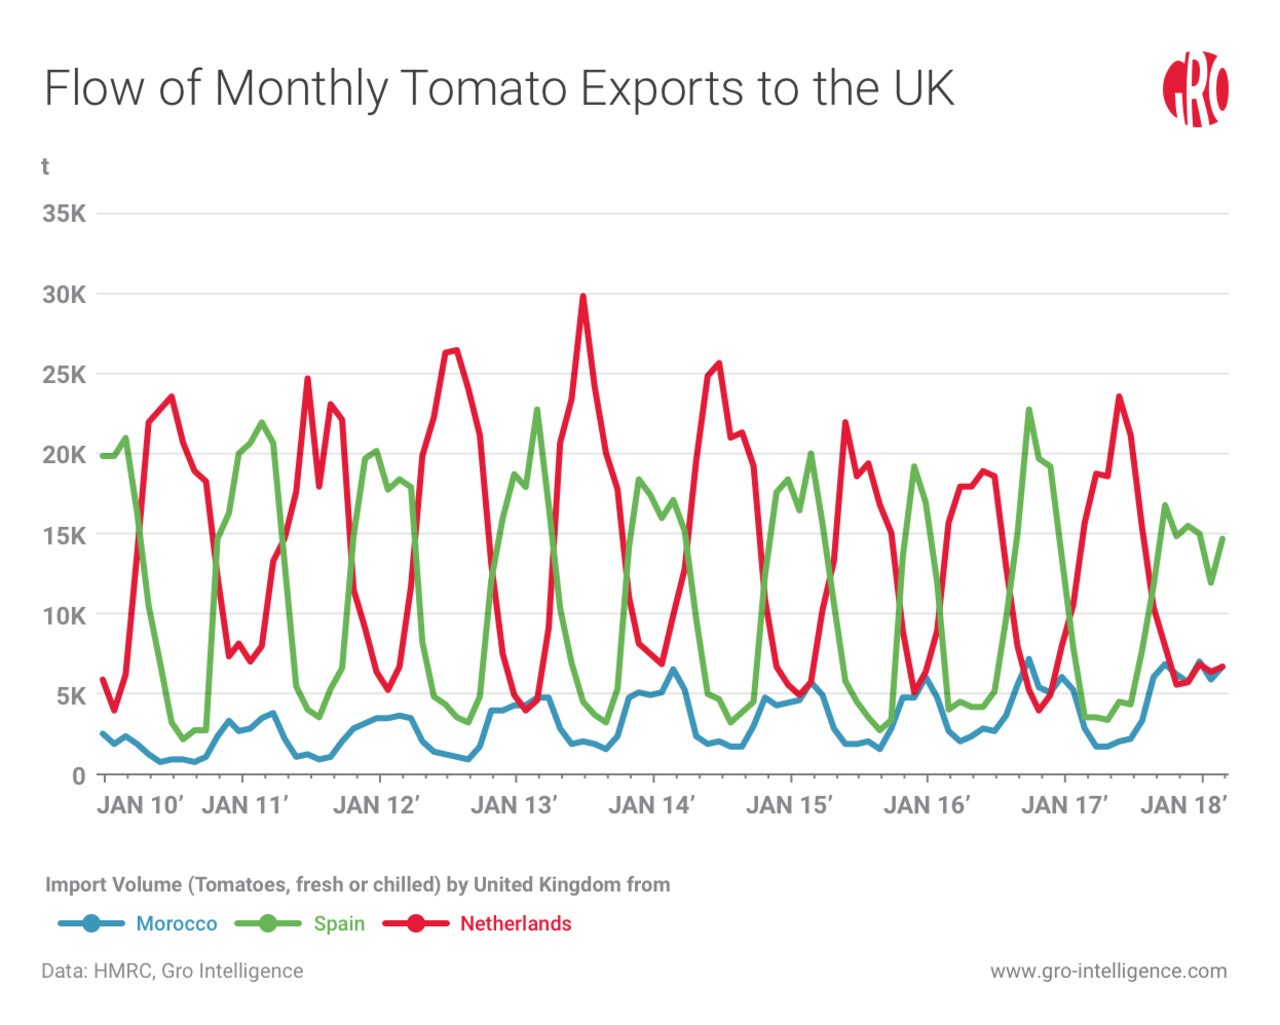 Brexit Reveals UK's Dependence on EU Fruit | Gro Intelligence